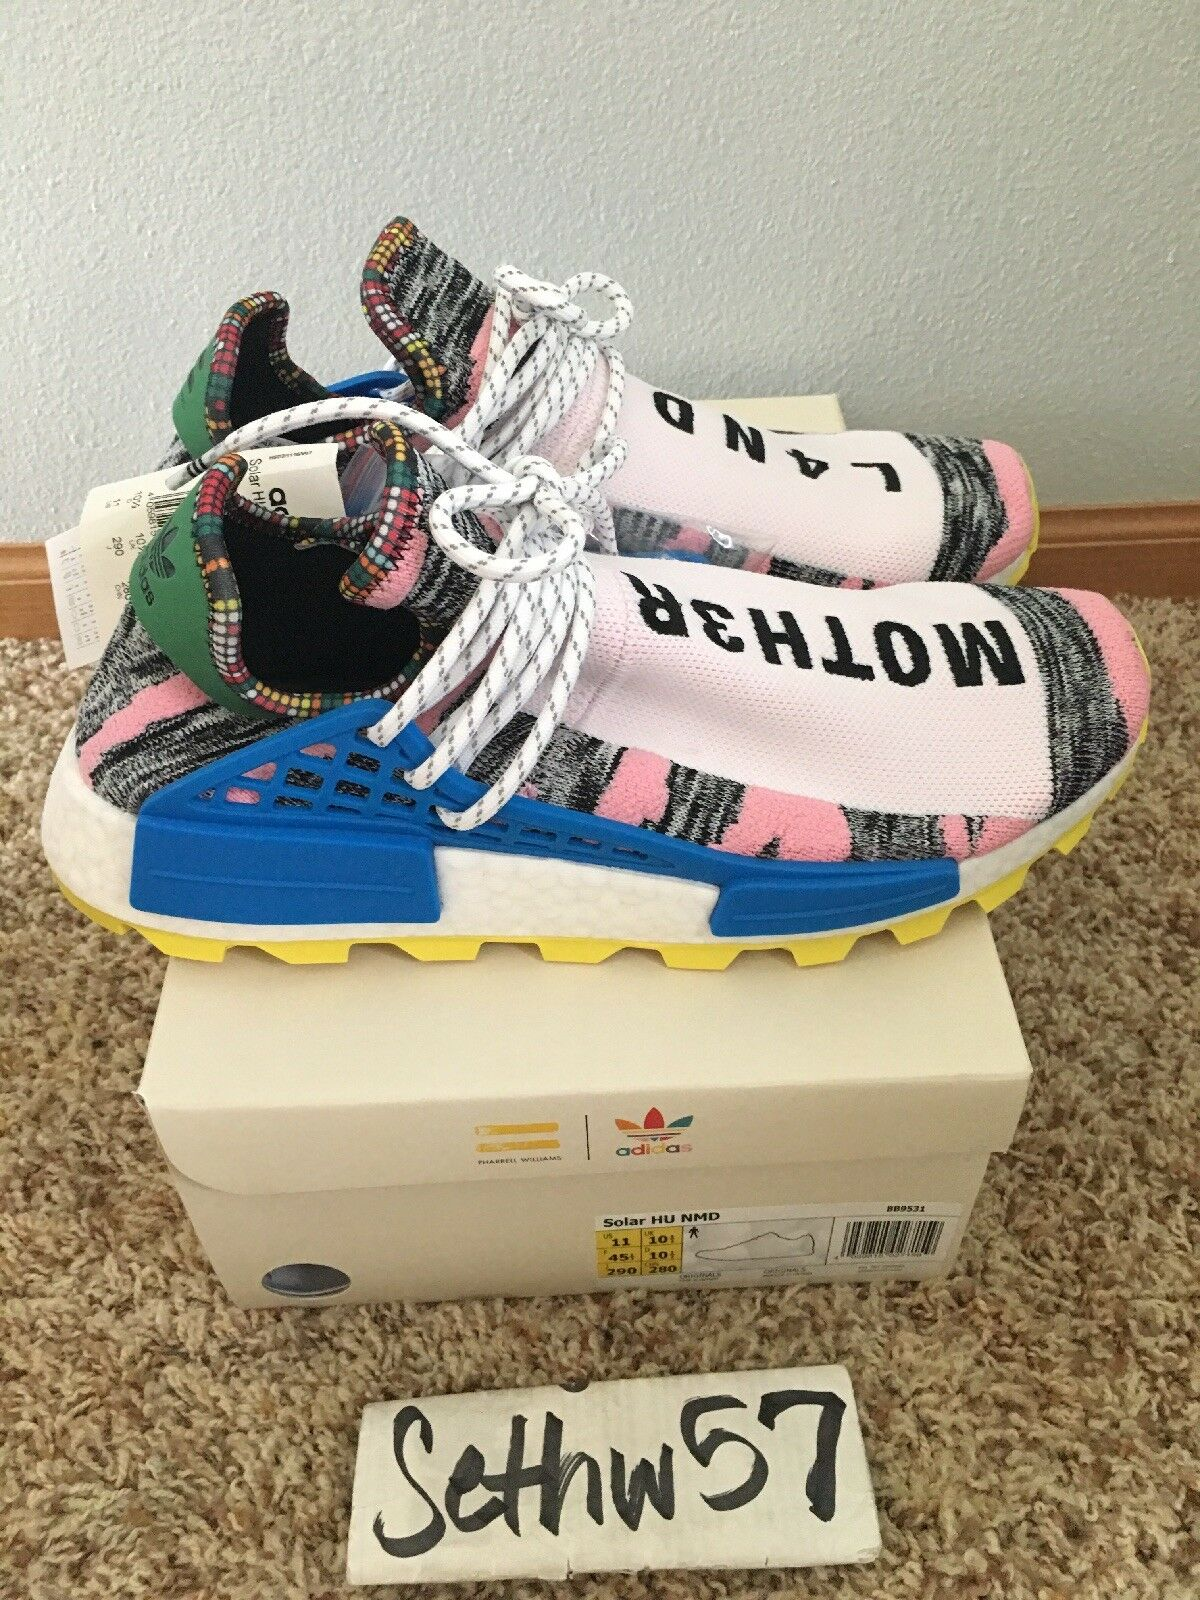 Adidas x Pharrell Williams NMD HU Solar Pack Mother Moth3r BB9531 Size 11 w rcpt